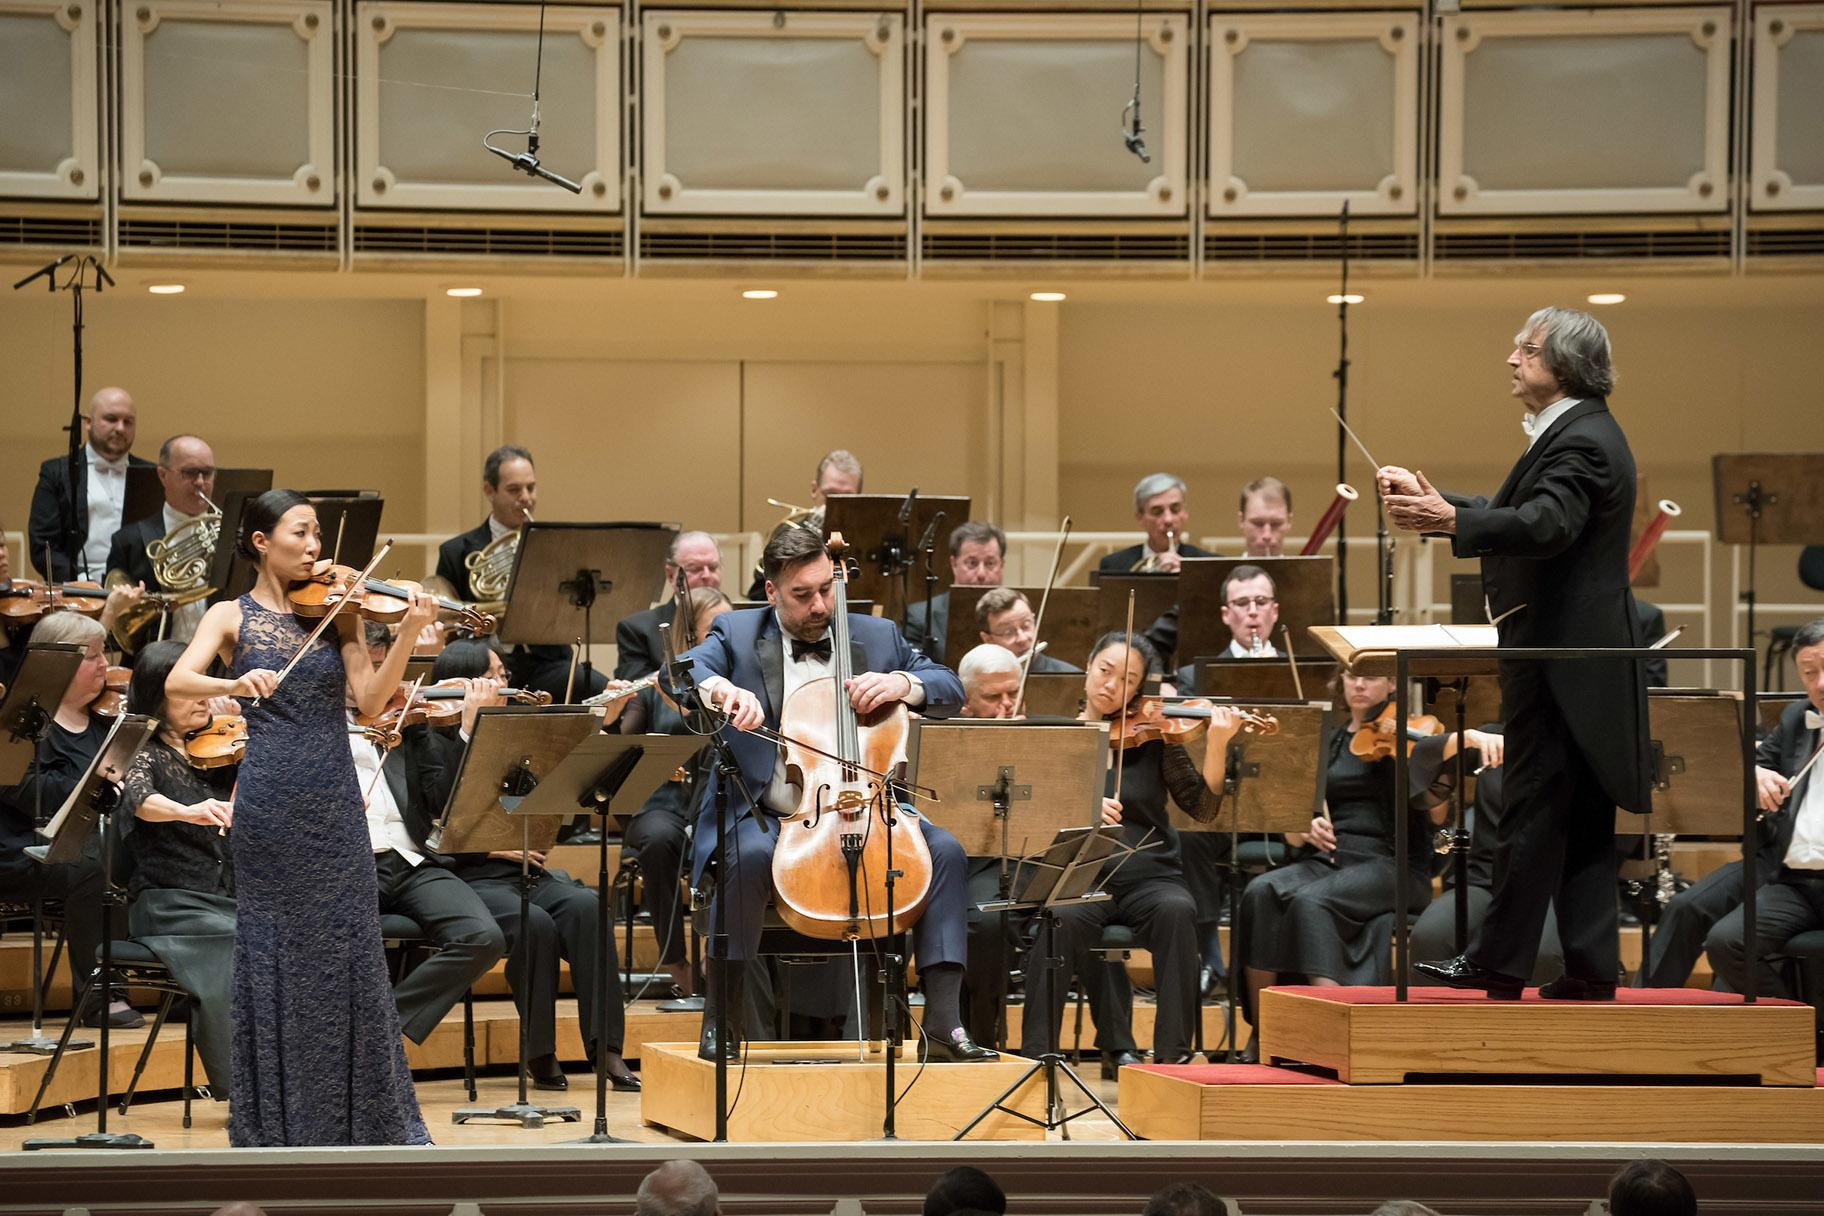 Zell Music Director Riccardo Muti (right) leads the Chicago Symphony Orchestra and Associate Concertmaster Stephanie Jeong (far left) and Assistant Principal Cello Kenneth Olsen (center) in the Brahms Double Concerto at Symphony Center on Nov. 7, 2019. (Credit: Anne Ryan)